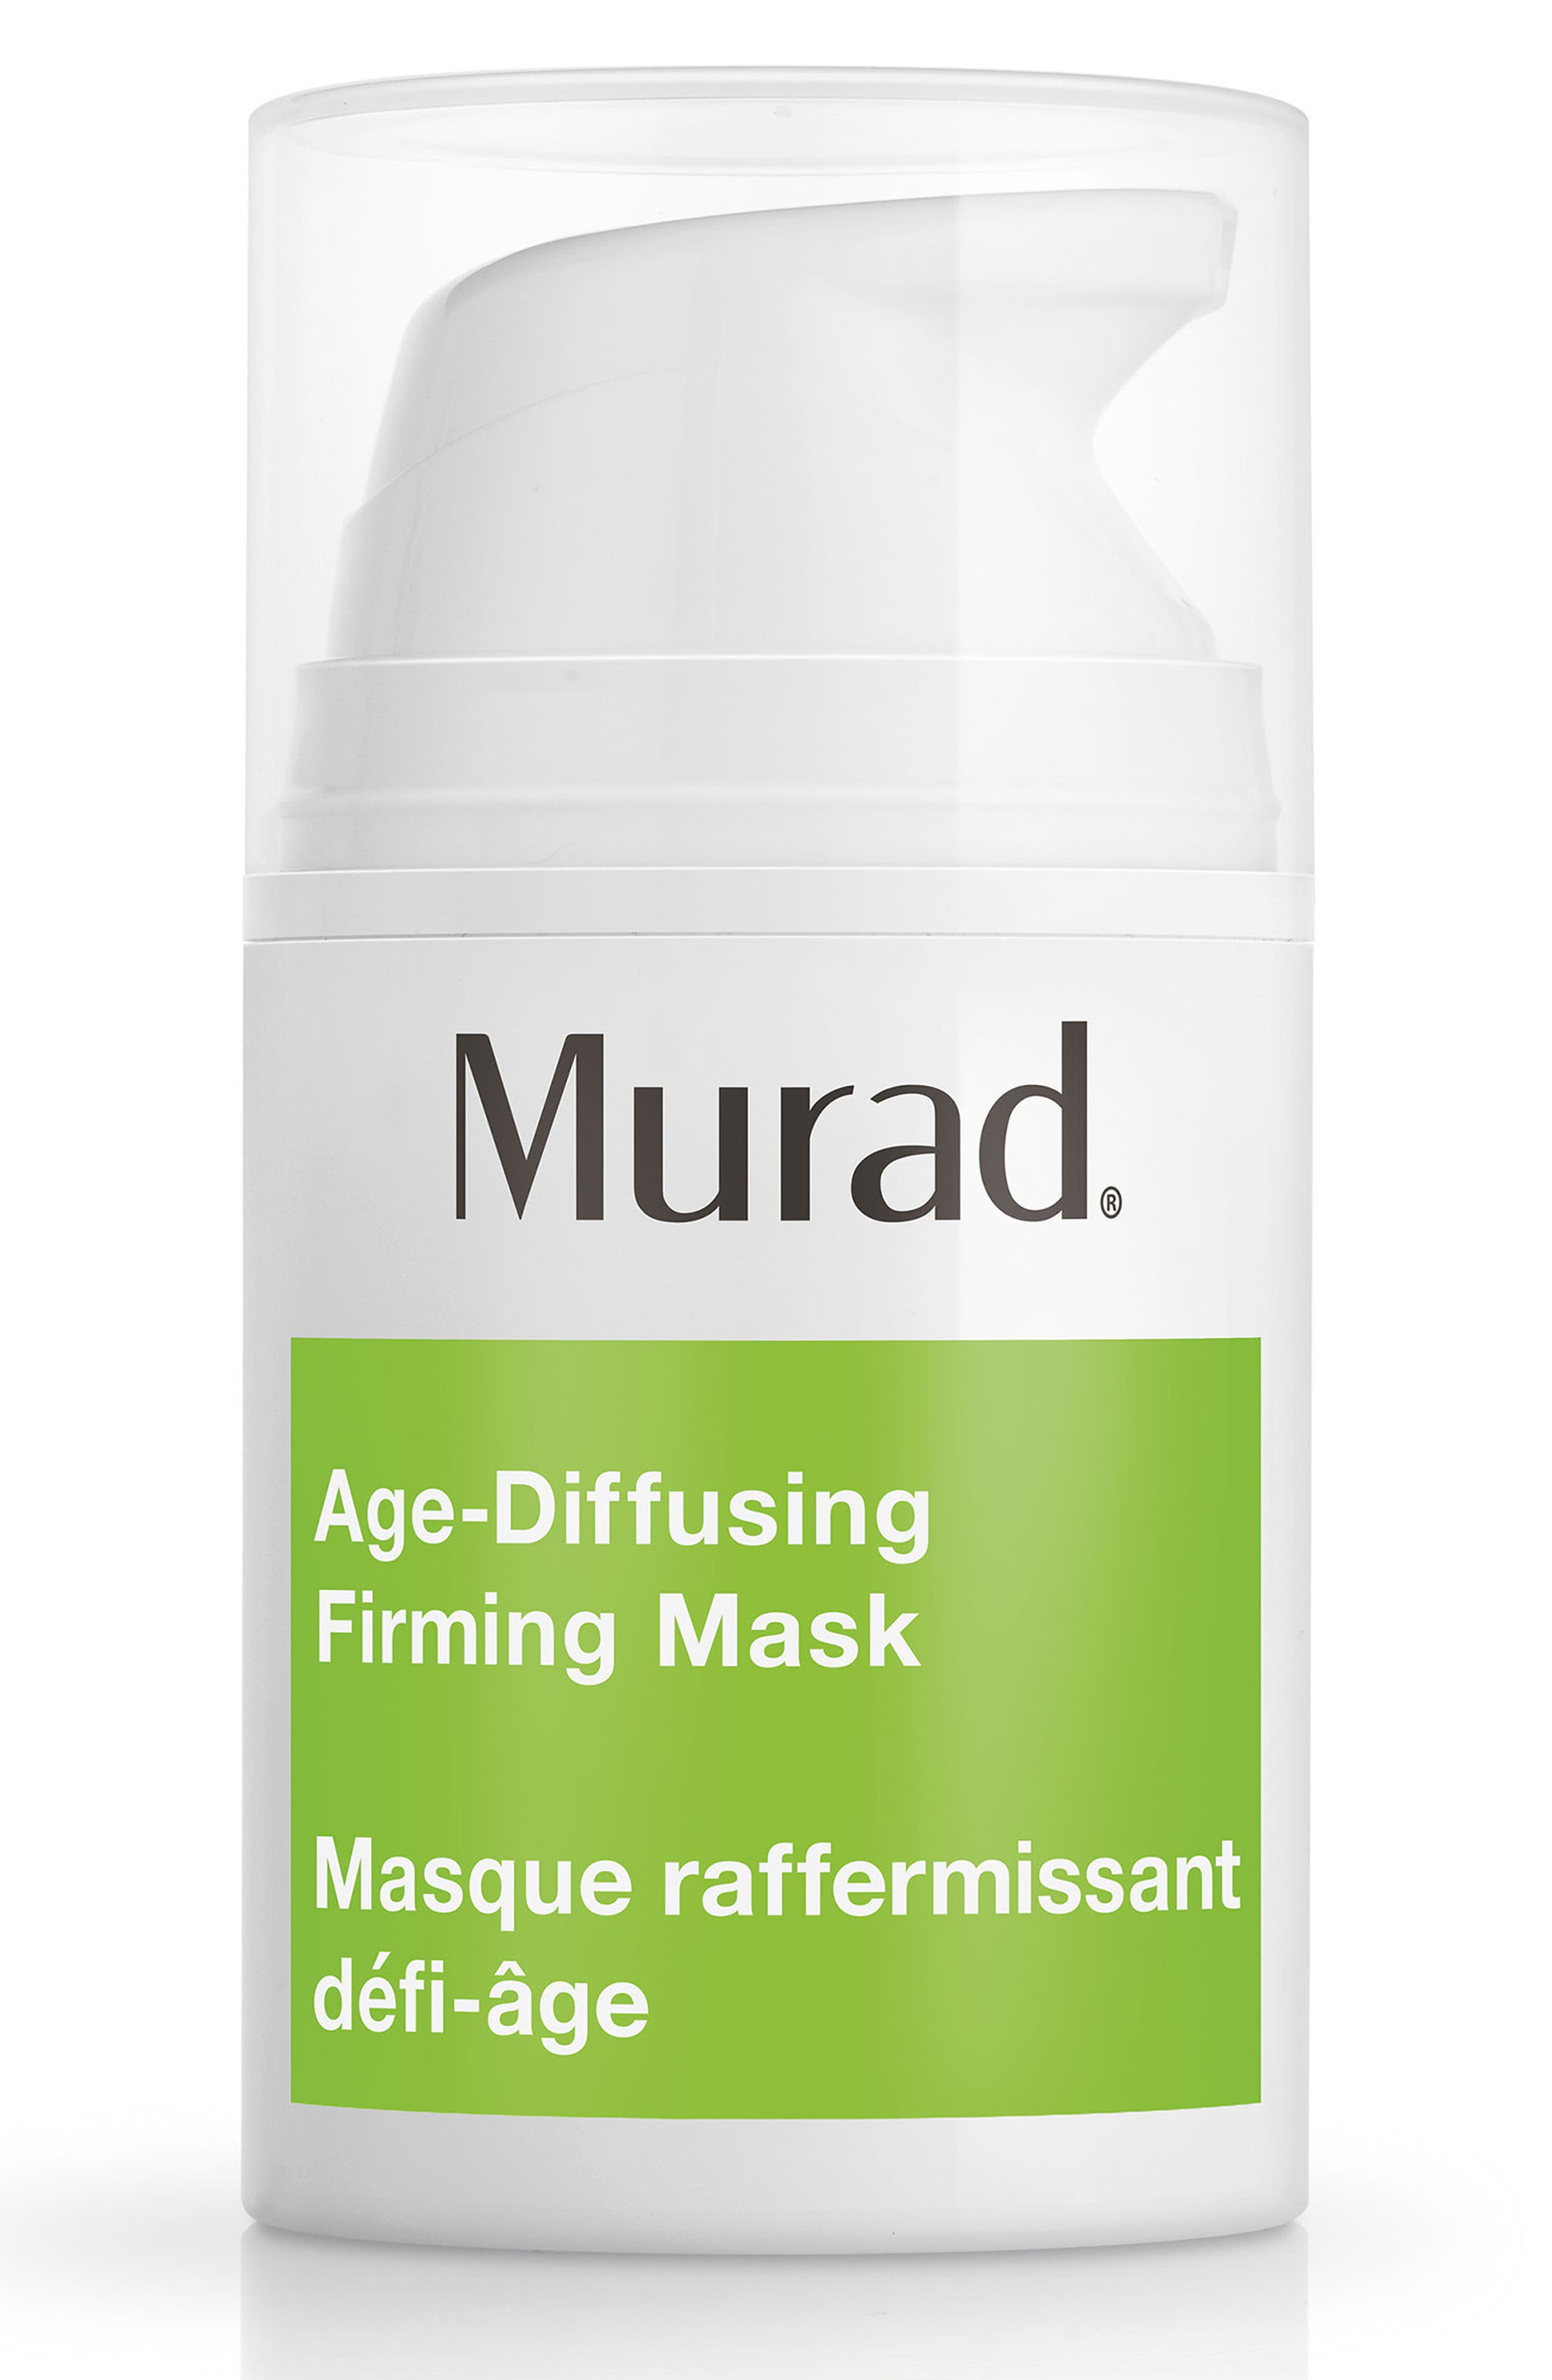 Murad® Age-Diffusing Firming Mask